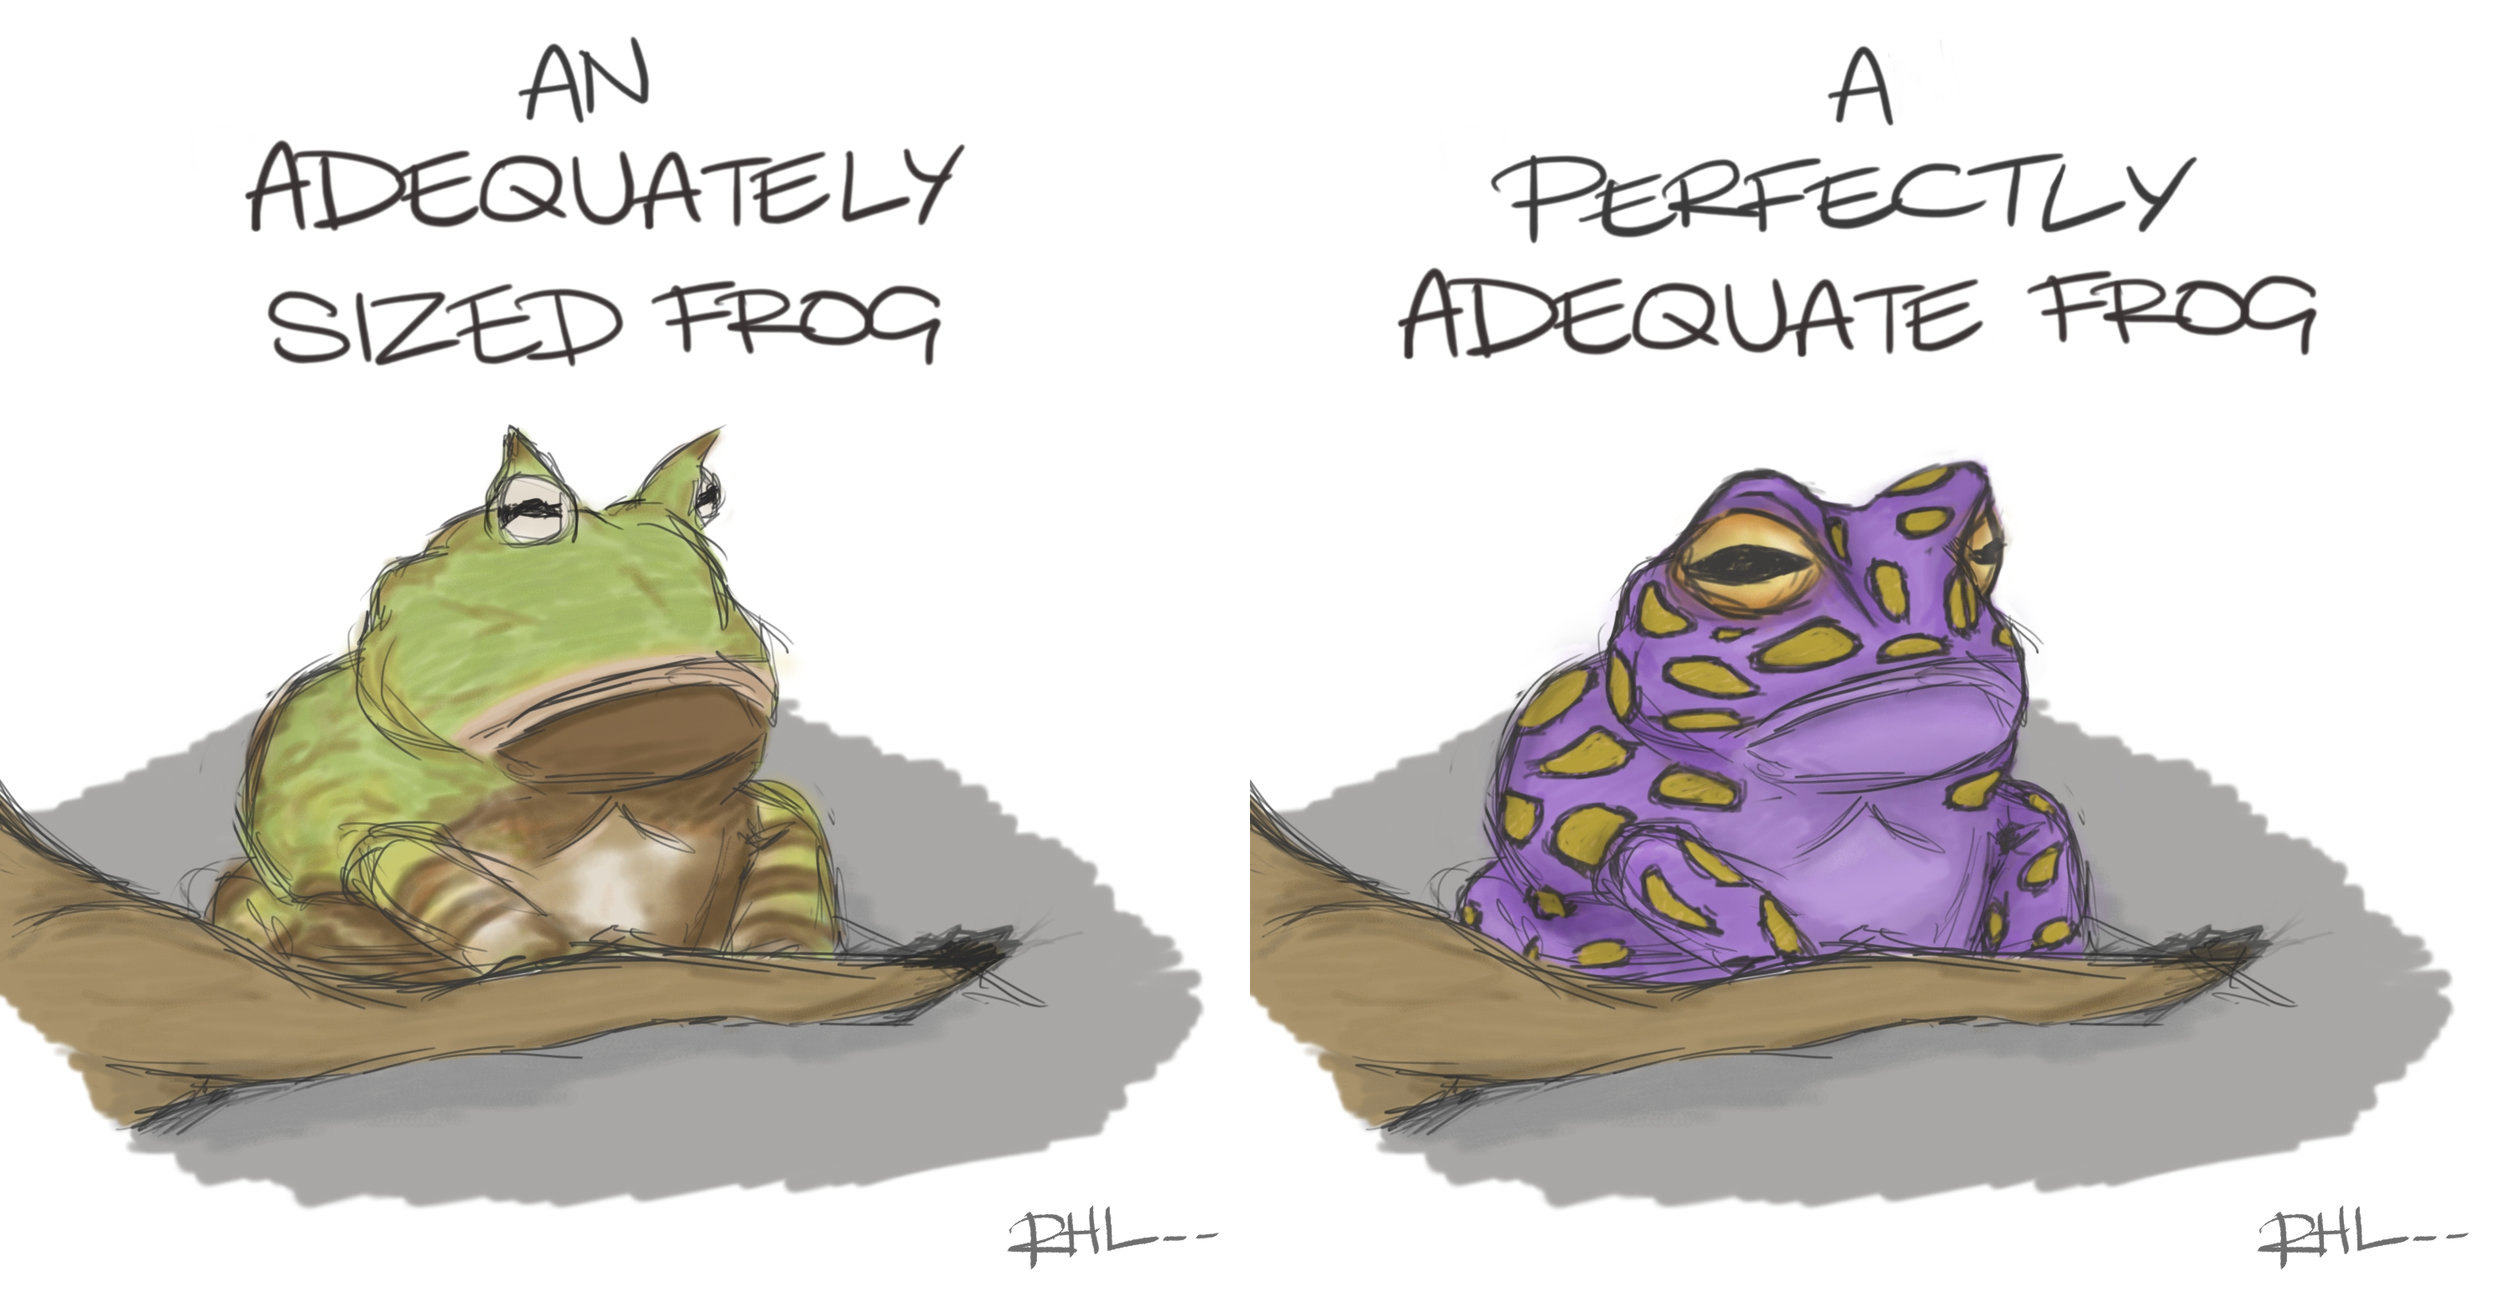 Adequate Frogs